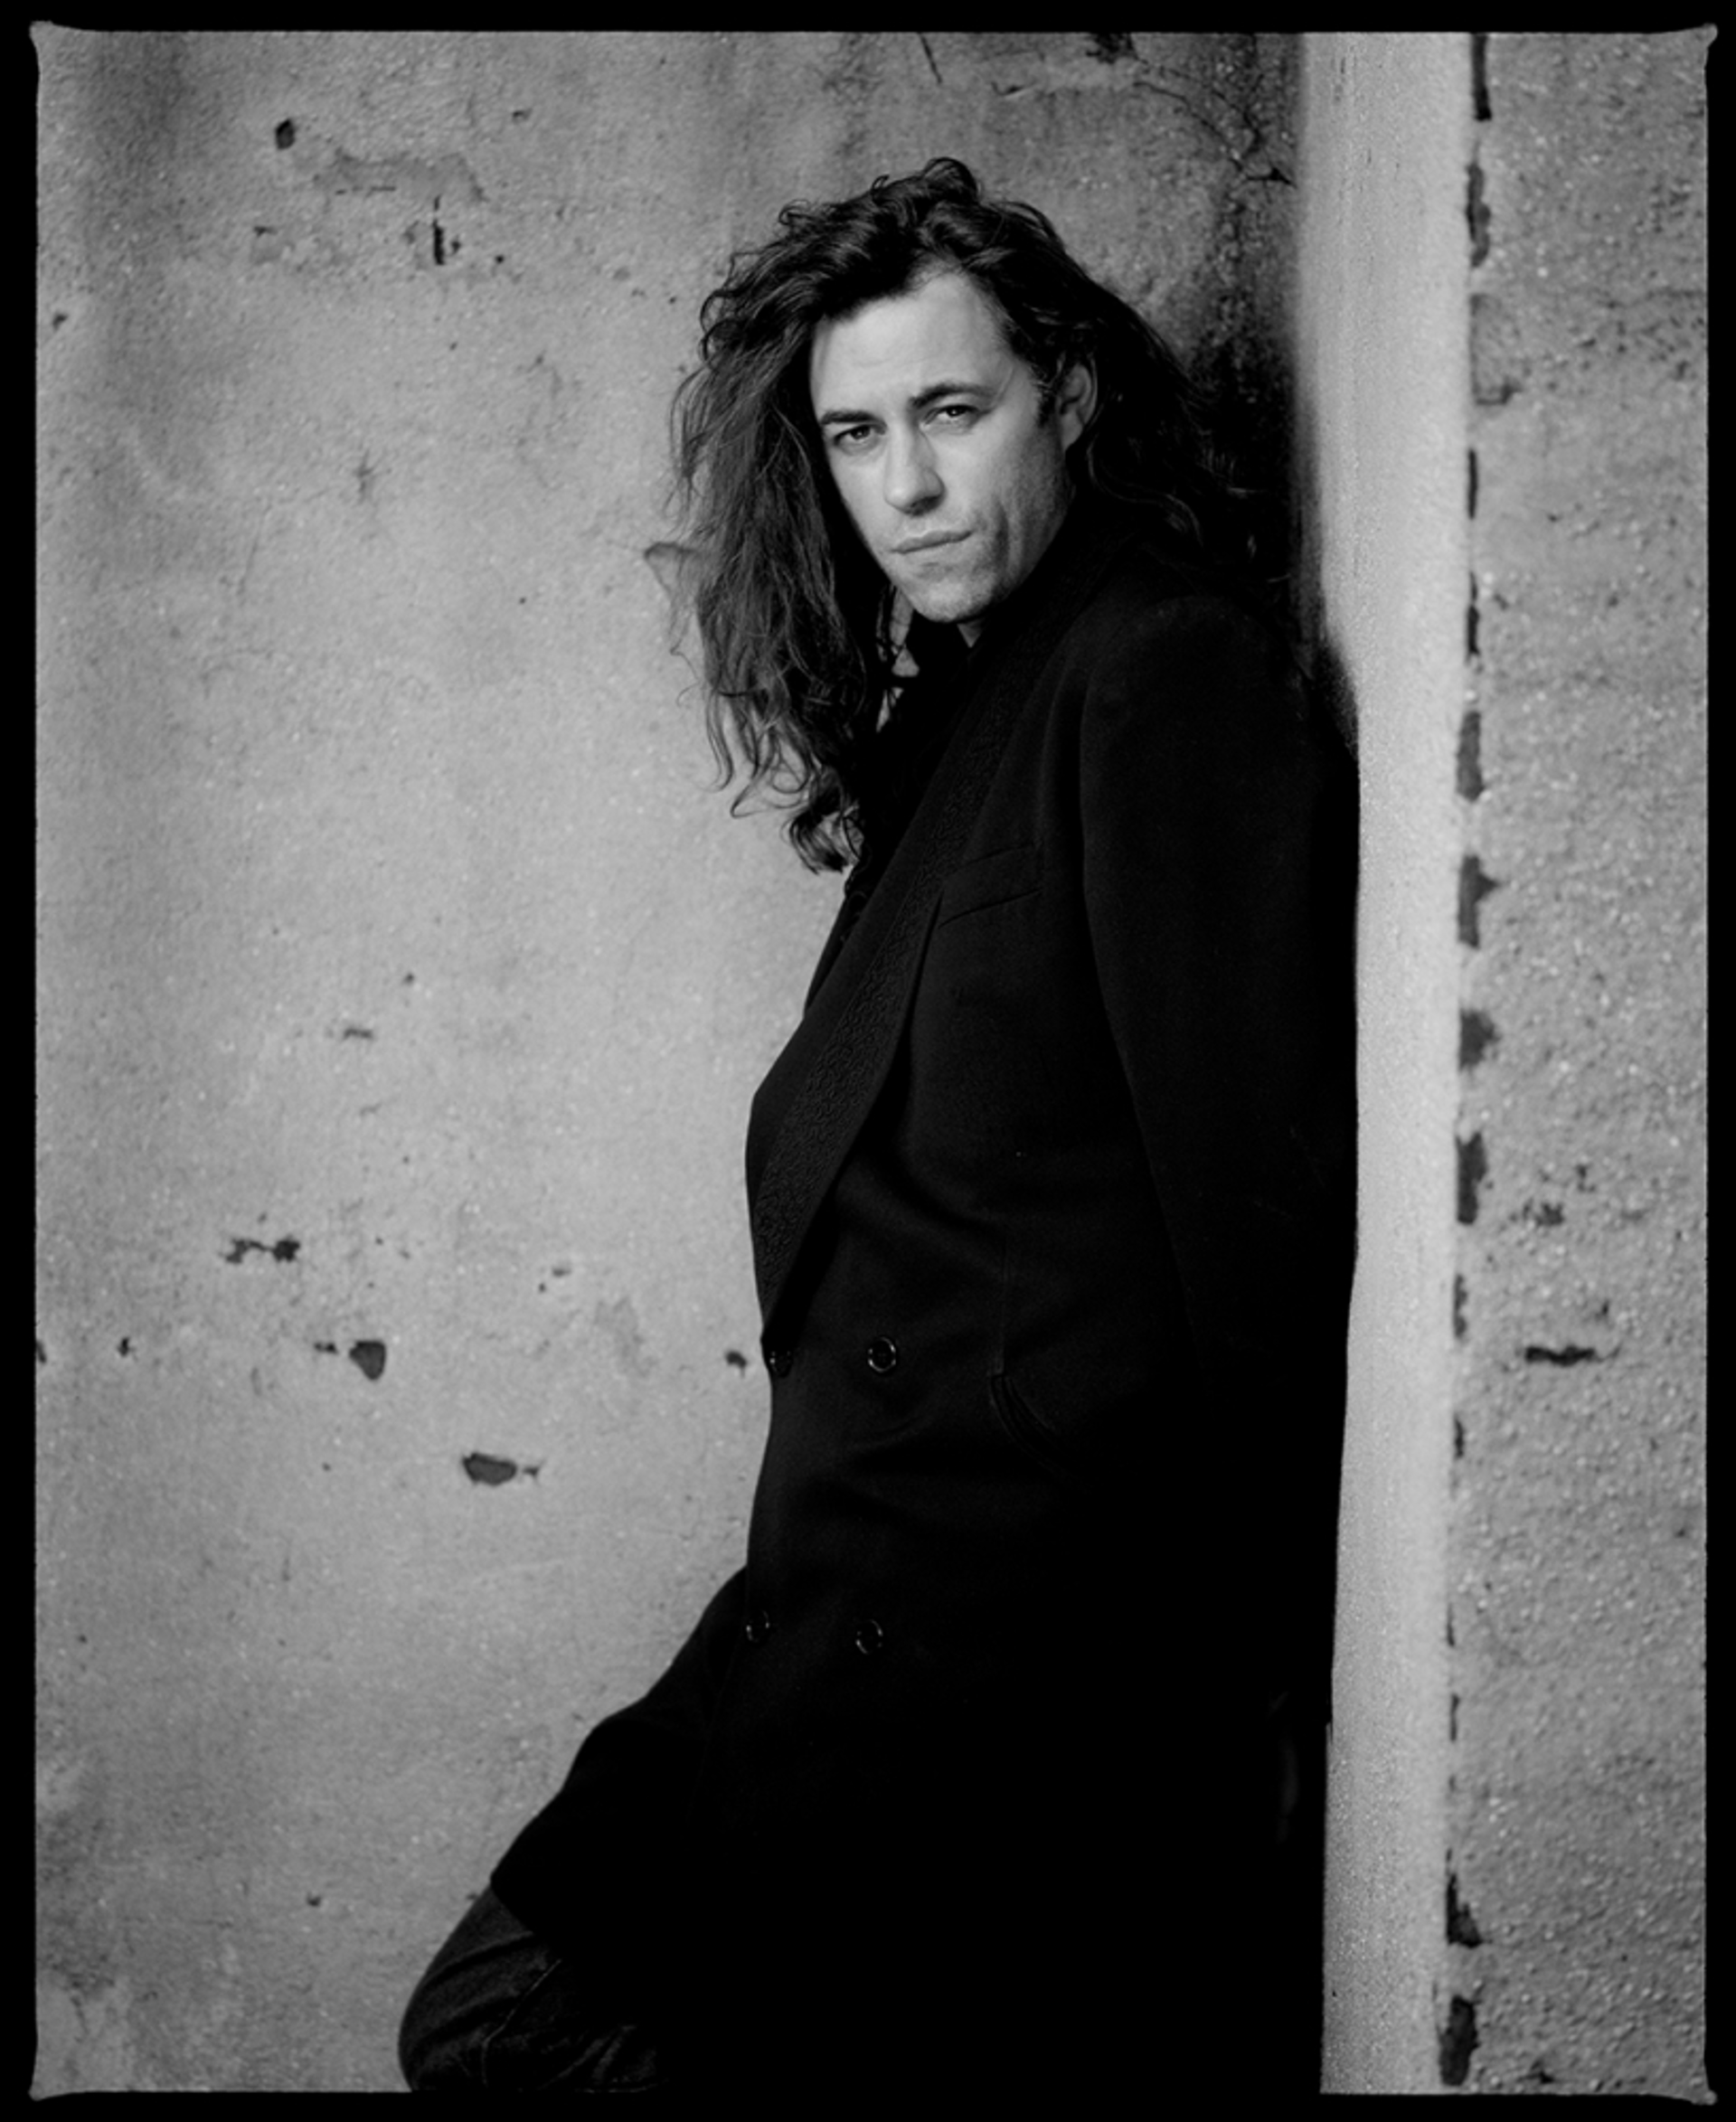 90091 Bob Geldof On the Wall BW by Timothy White